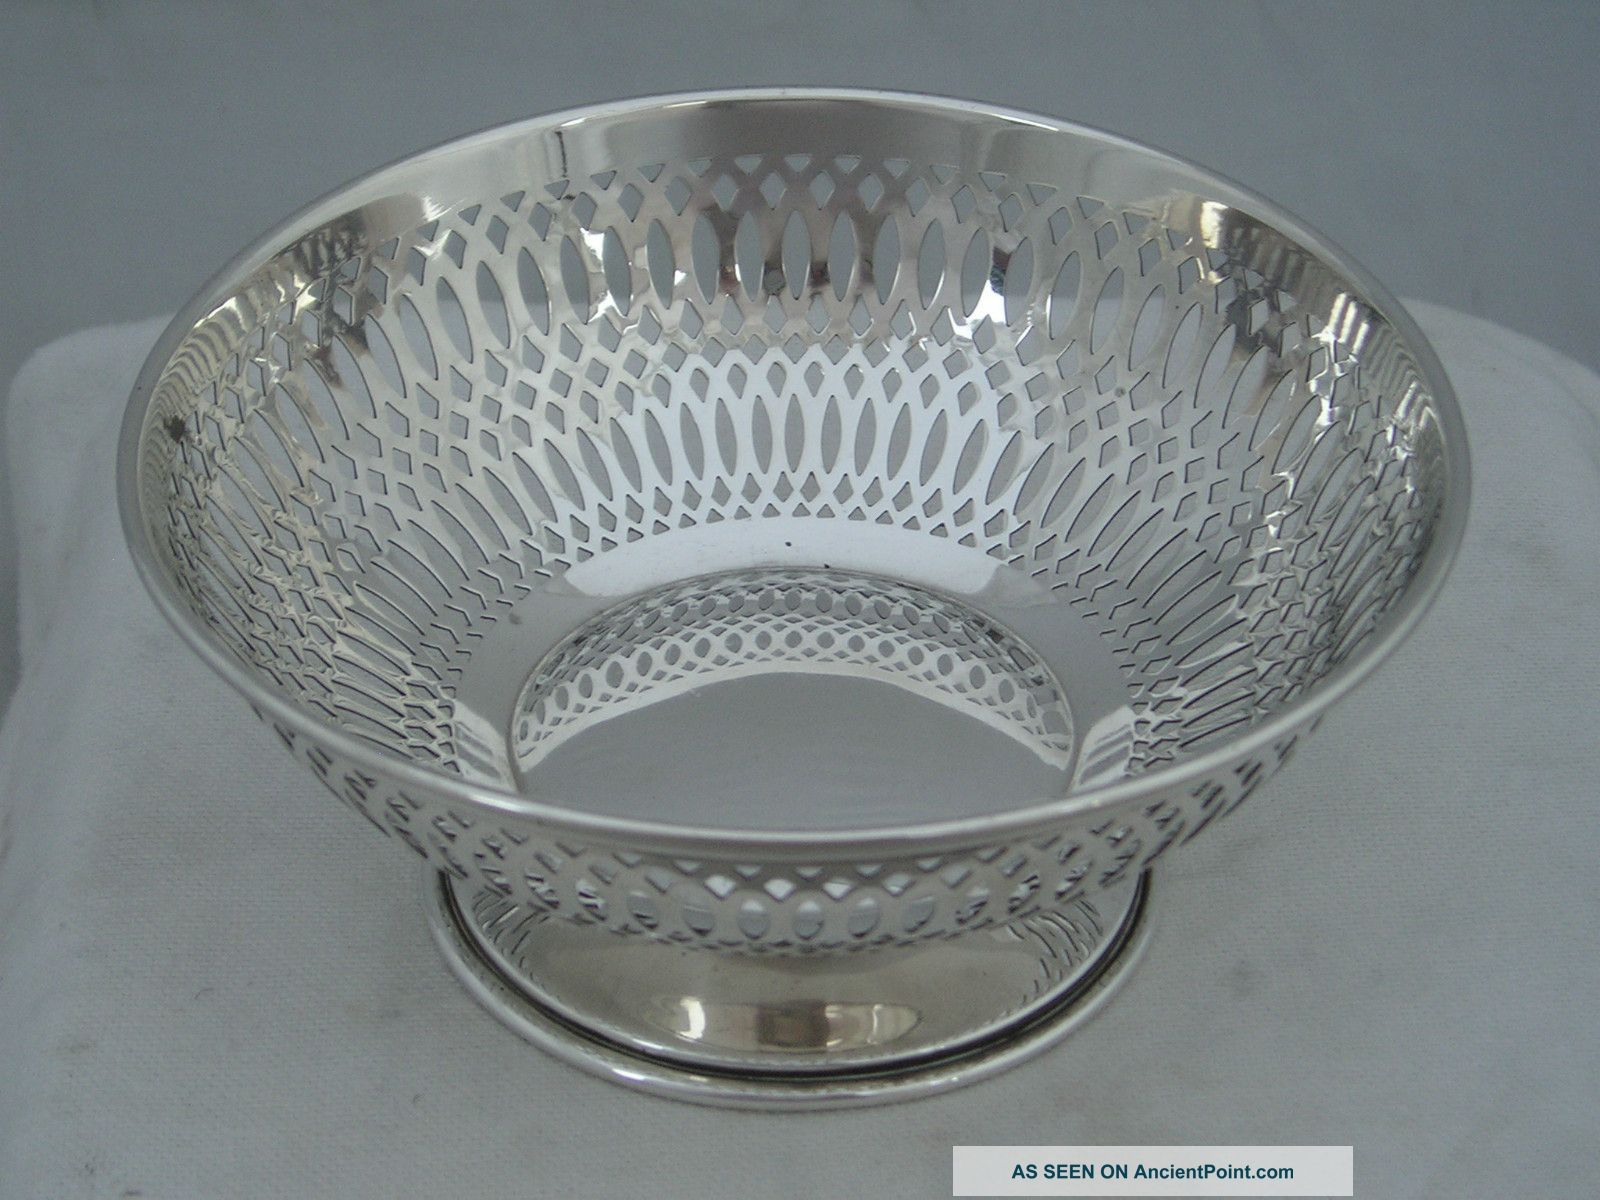 Lovely Art Nouveau 1911 William Neale Hallmarked Silver Pierced Bowl 82g Bowls photo